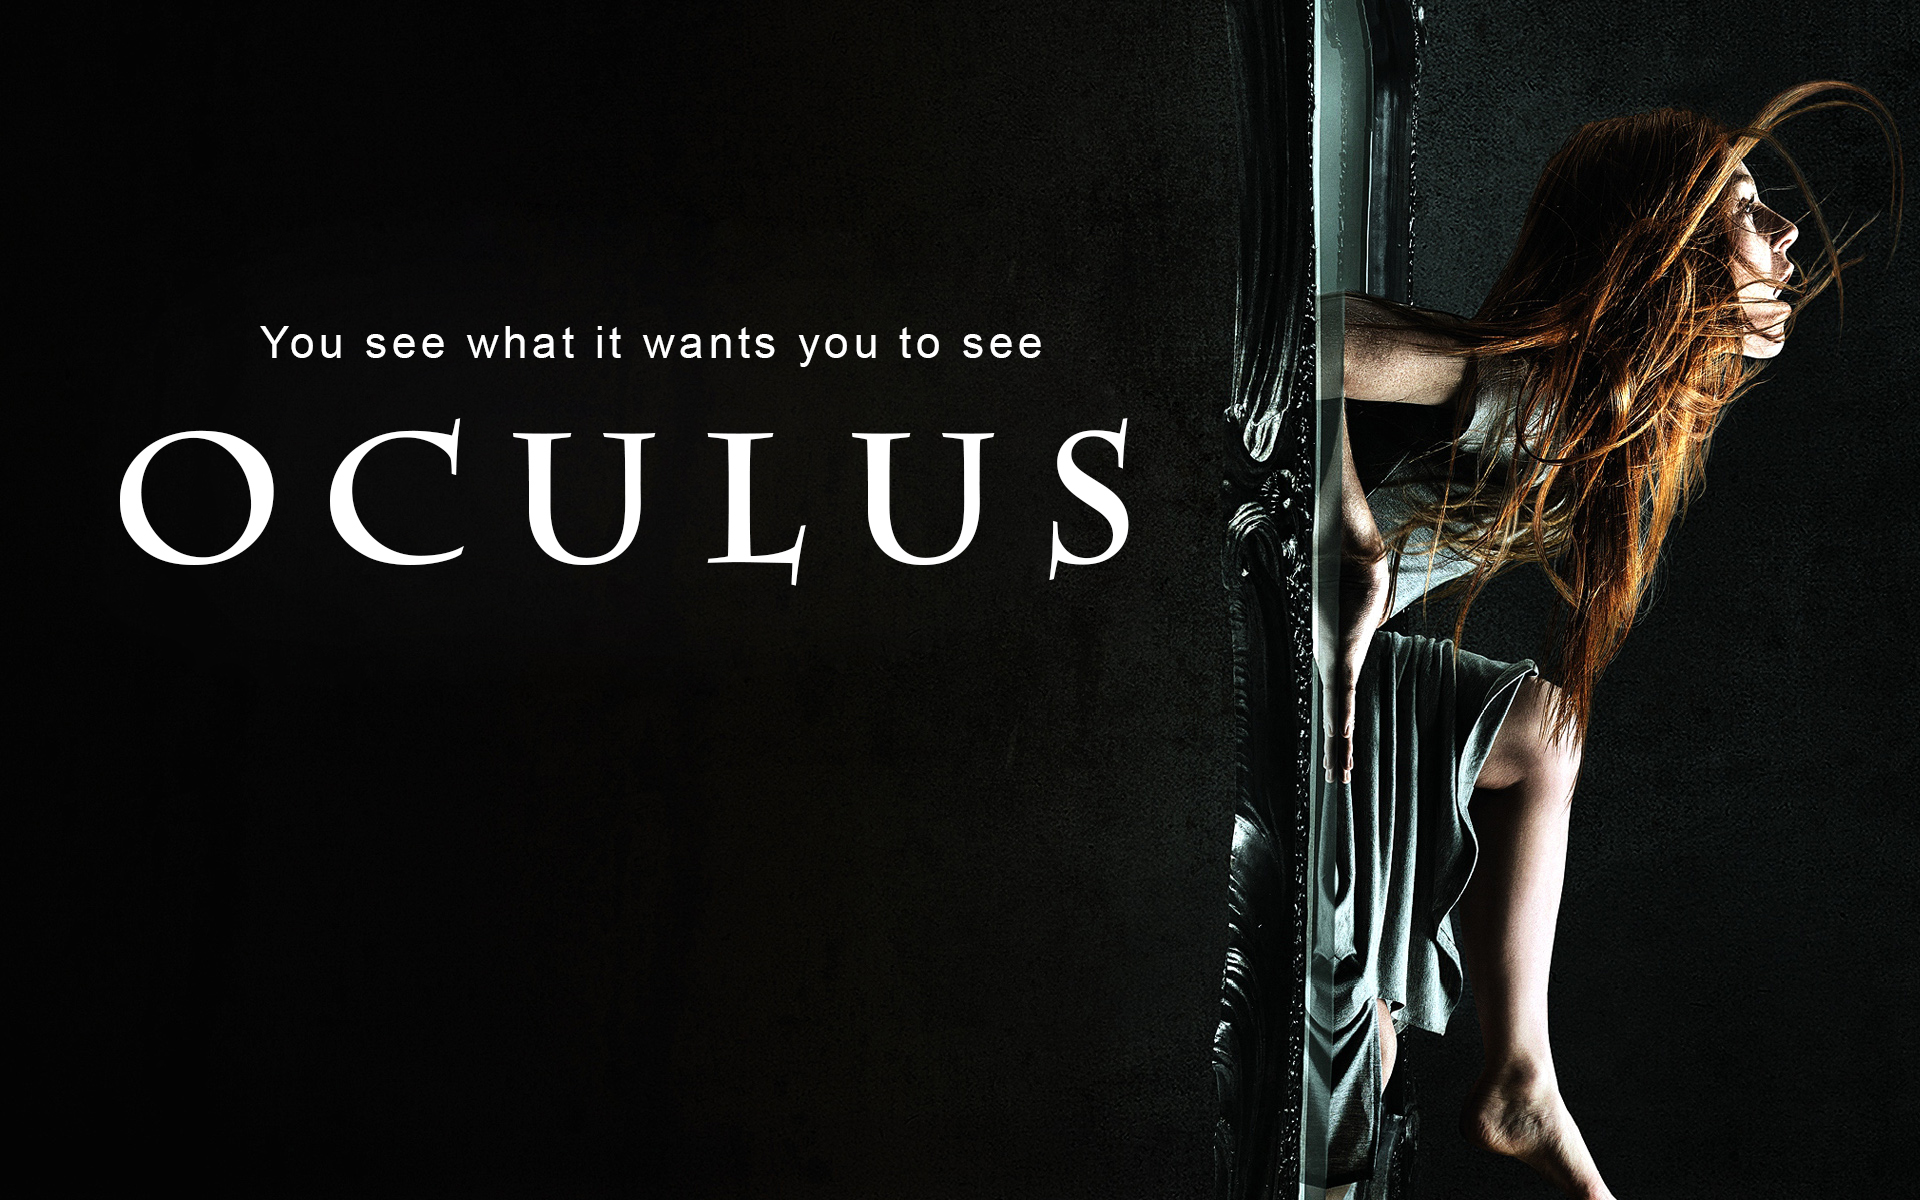 oculus-movie-2014-exclusive-6572